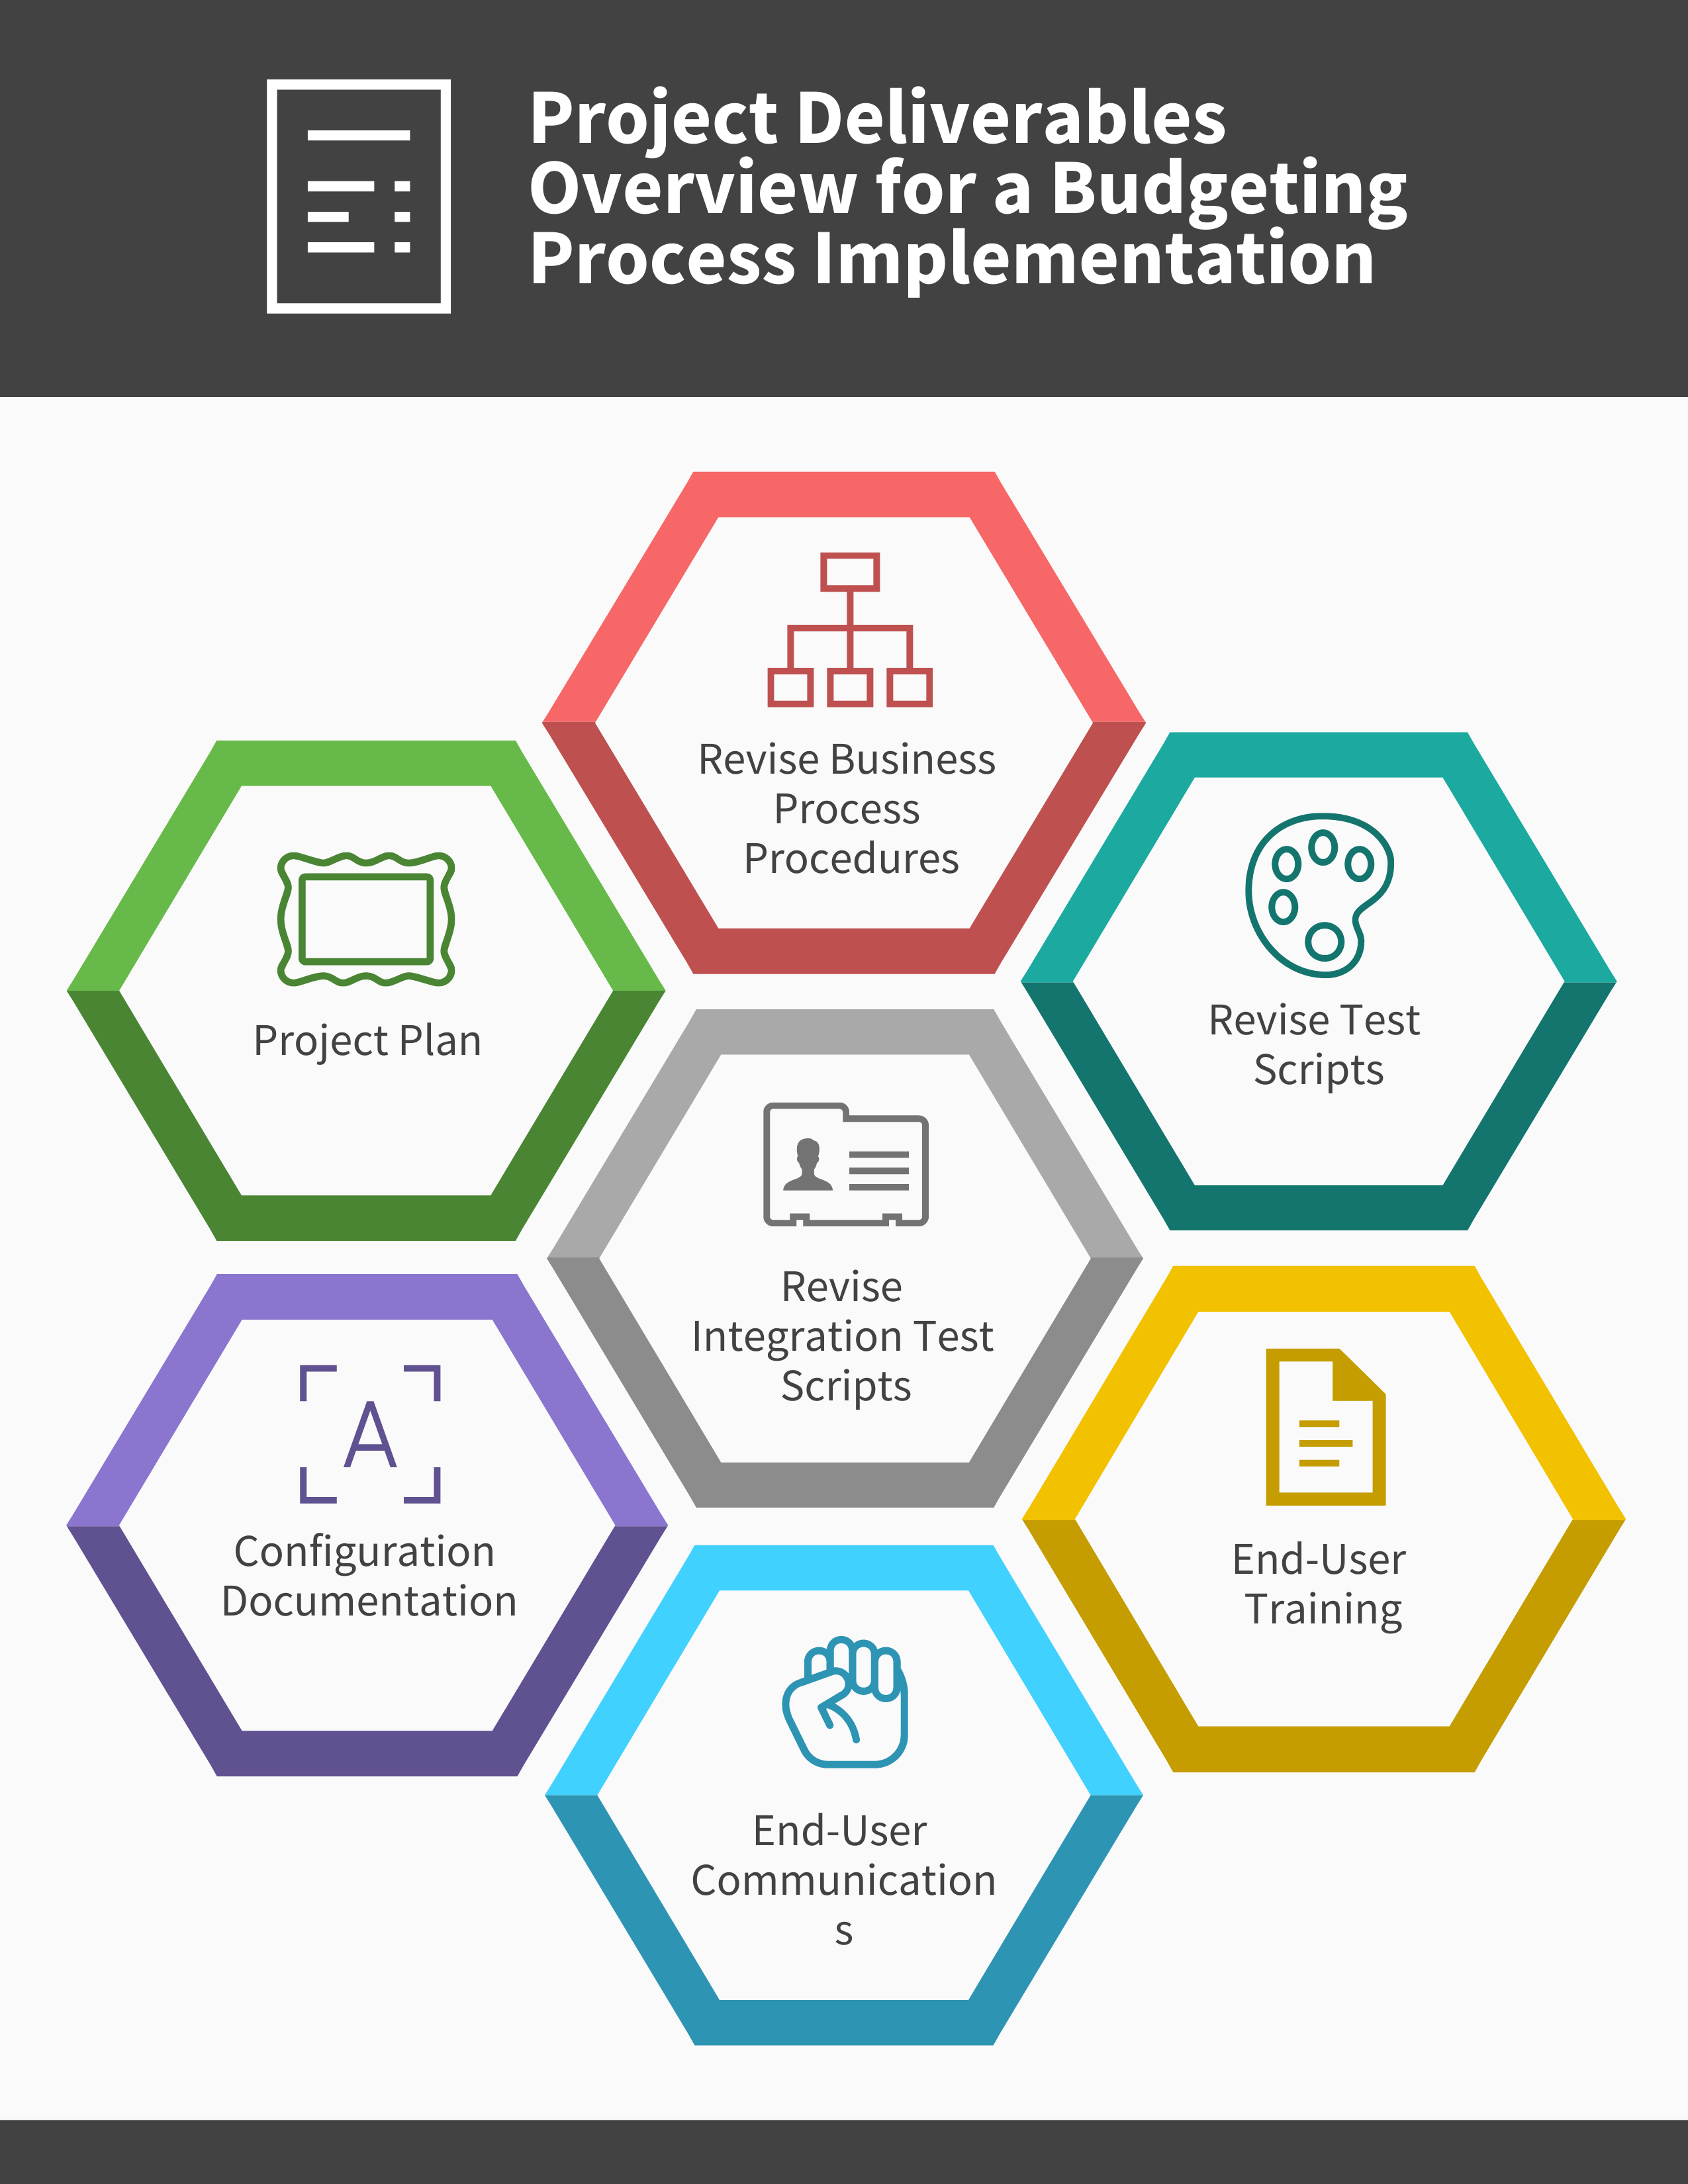 What are the Project Deliverables Overview for a Budgeting Process Implementation